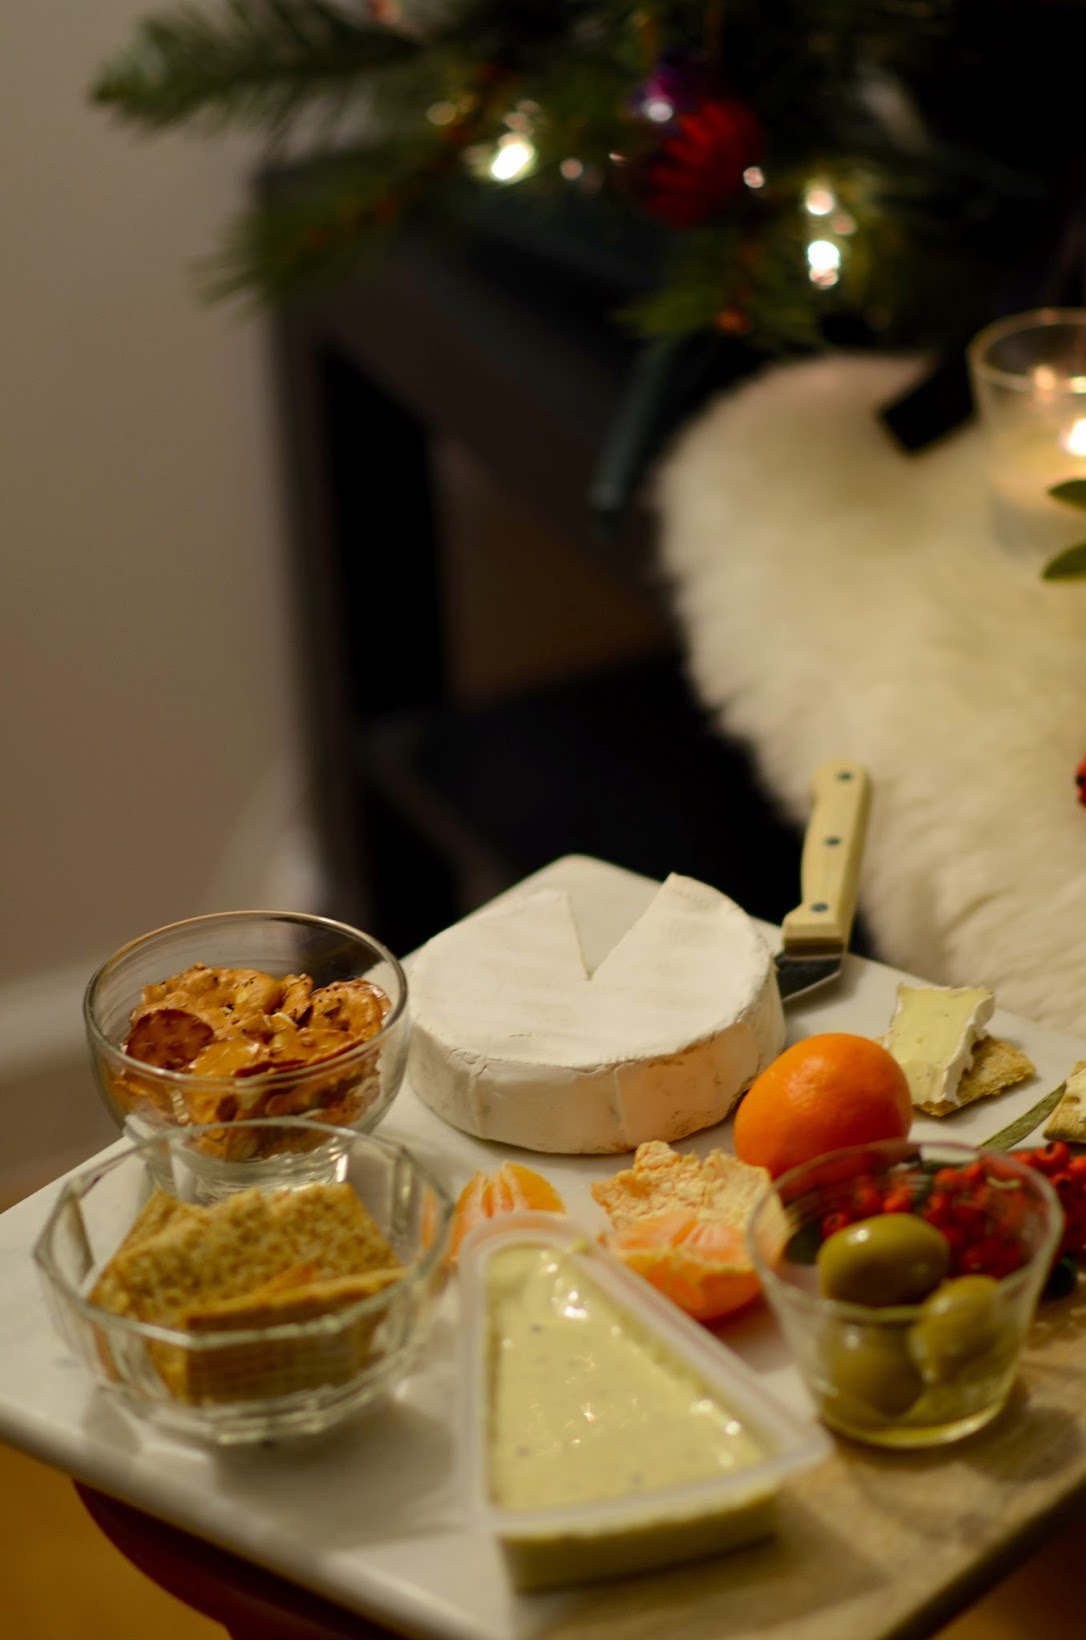 franciacorta, alouette cheese, holiday indulgances